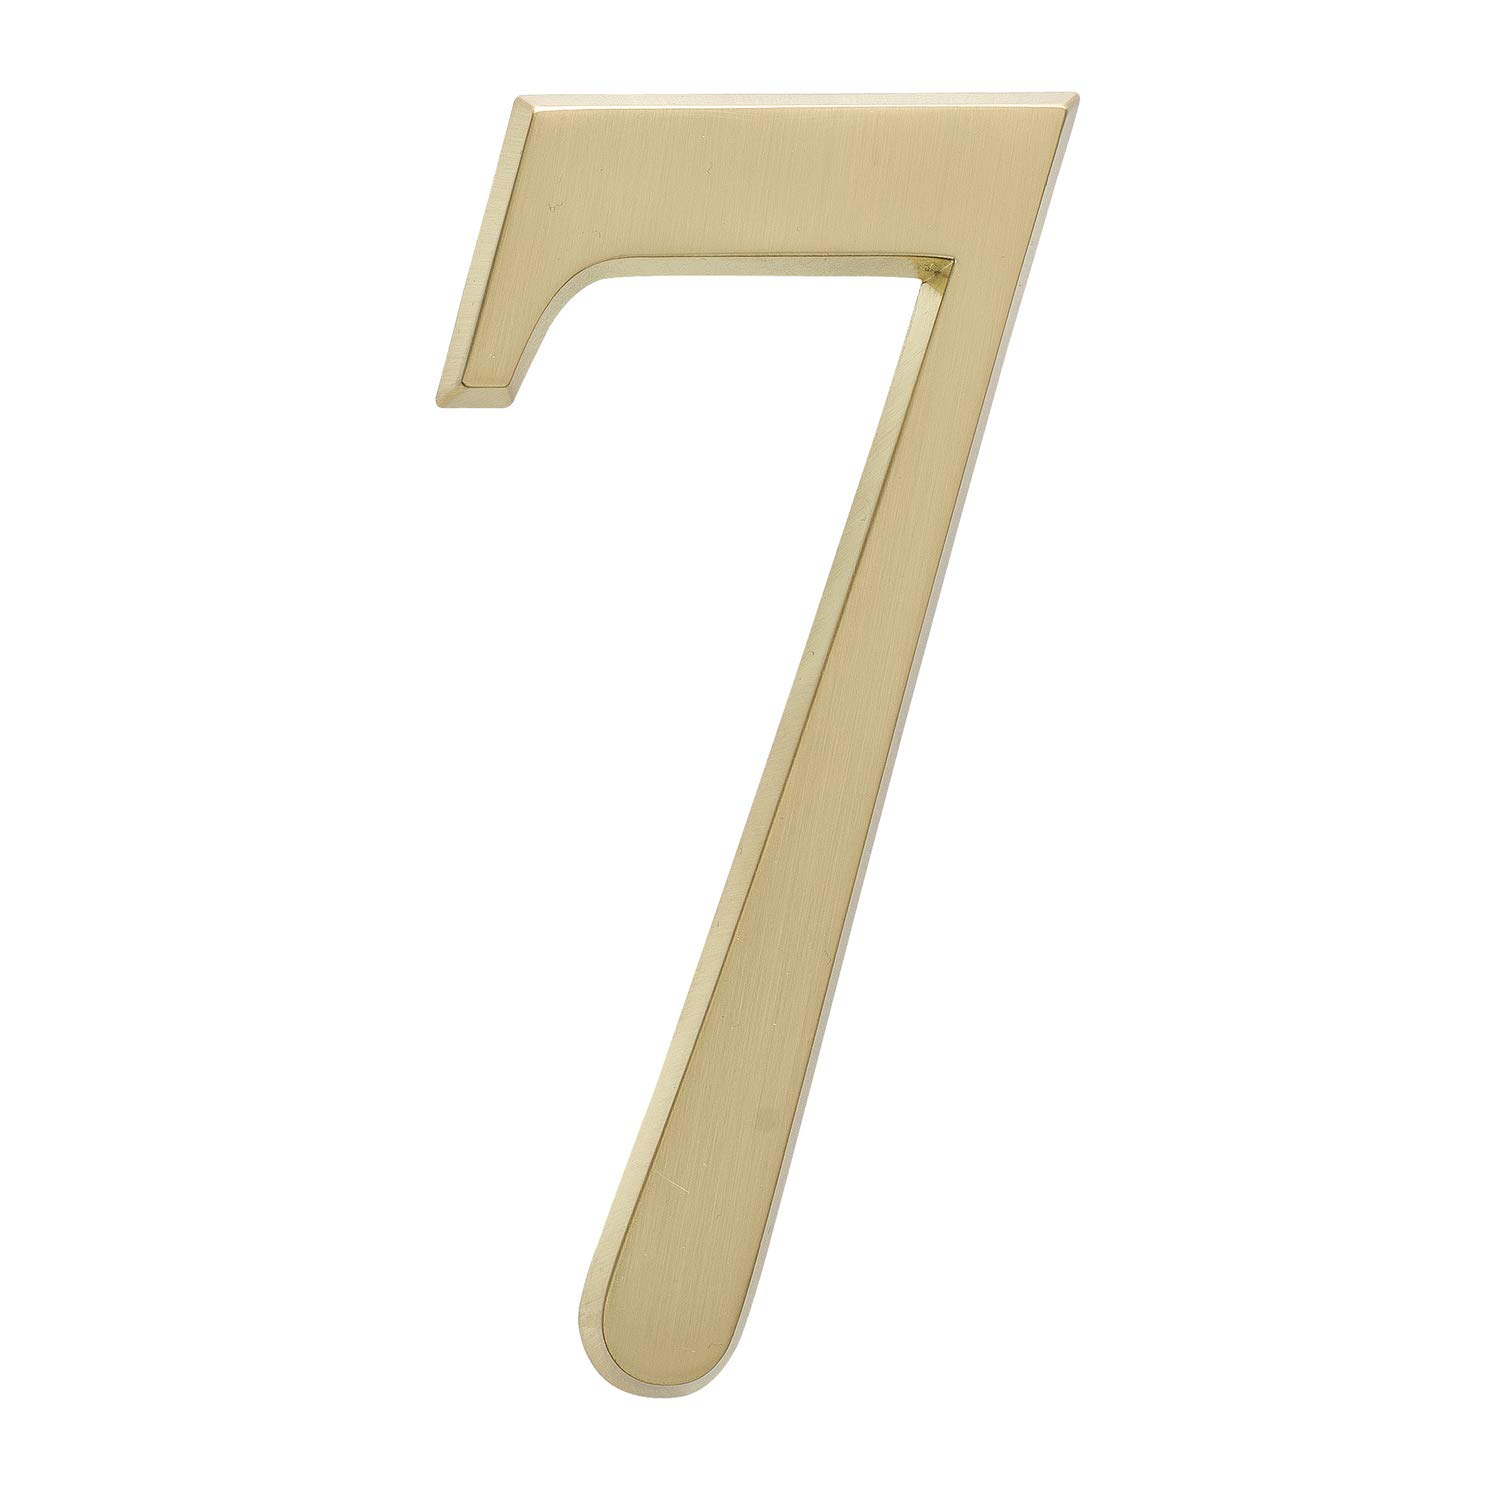 Whitehall Products DeSign-it Standard Plaque, Number ''7'', Satin Brass